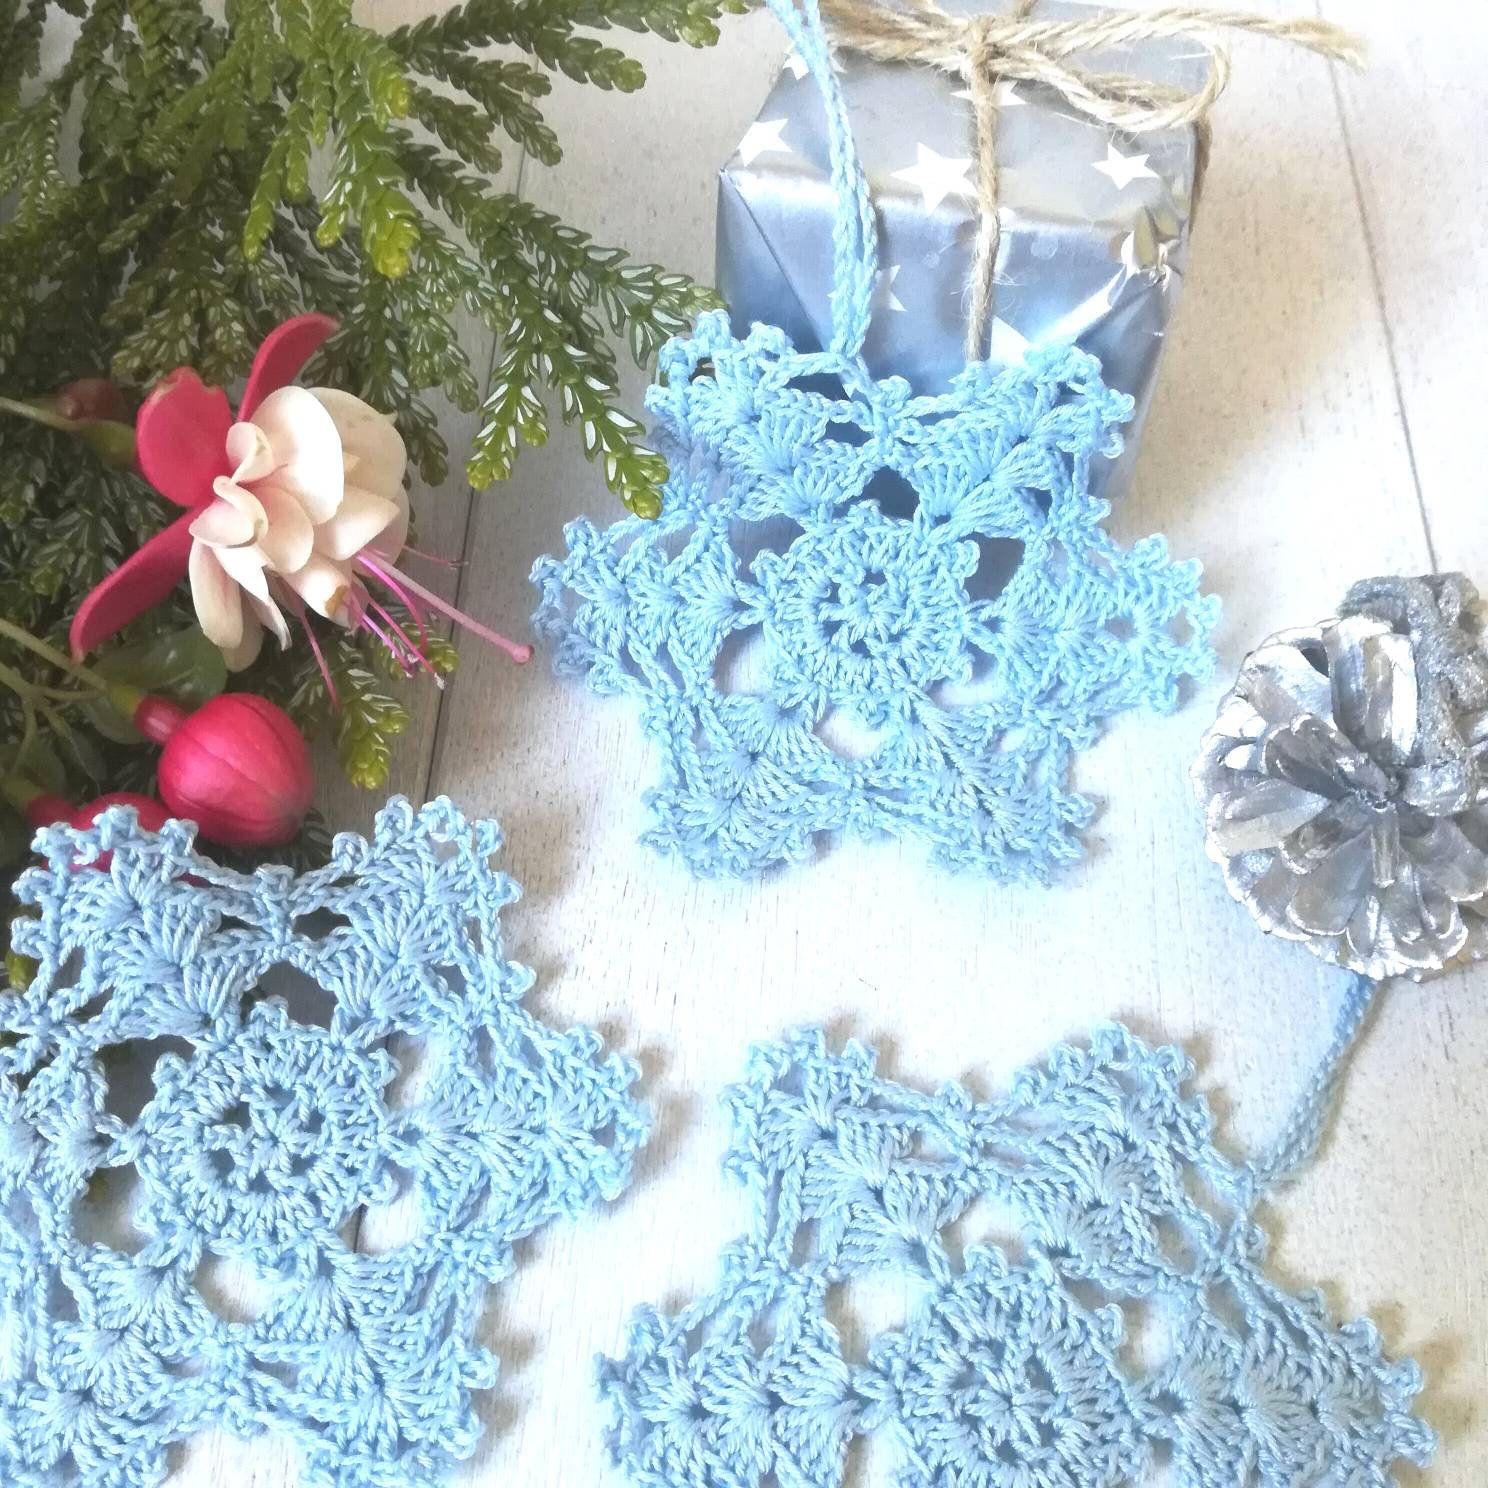 Crochet Blue Snowflakes, Christmas, Hanging Snowflakes, Christmas Ornaments, Gift For